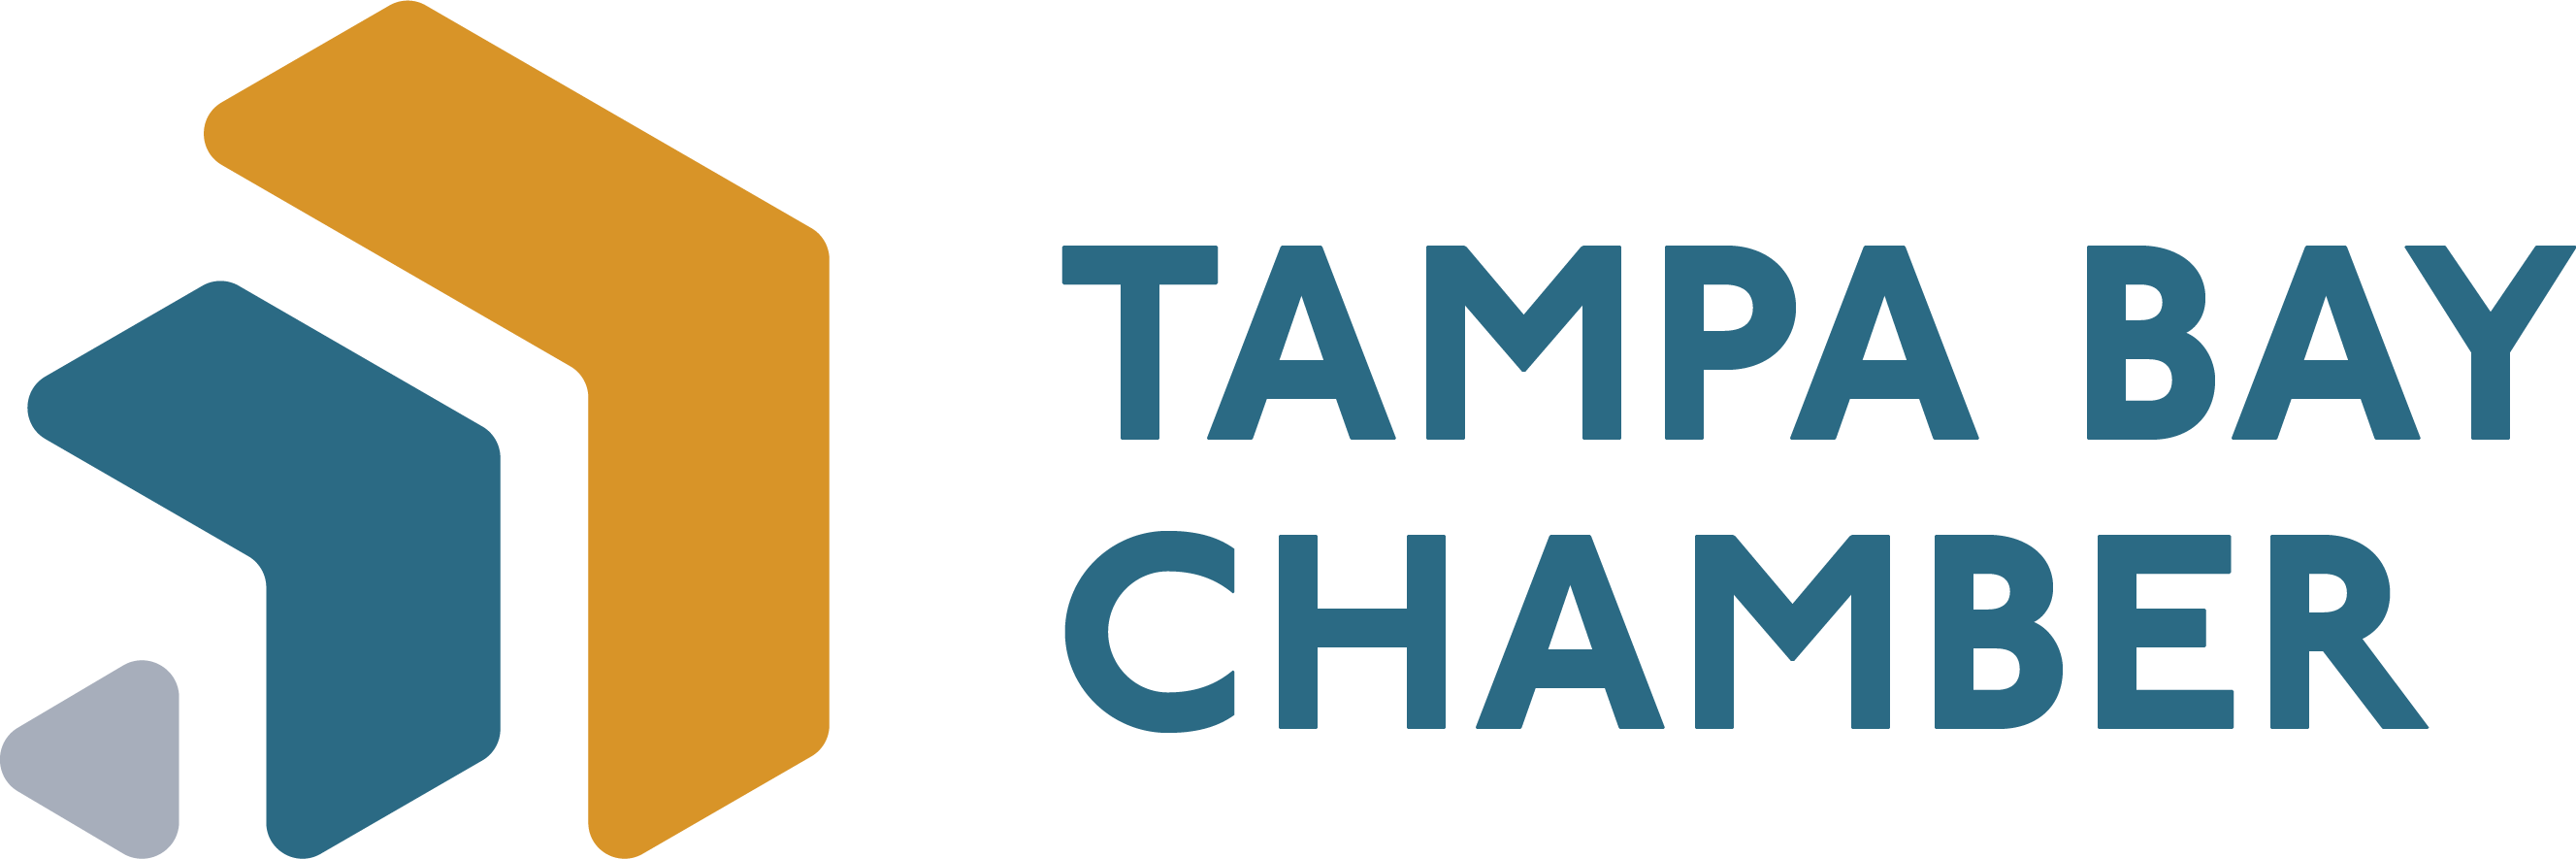 Tampa Bay Chamber-Annual Luncheon Graphic